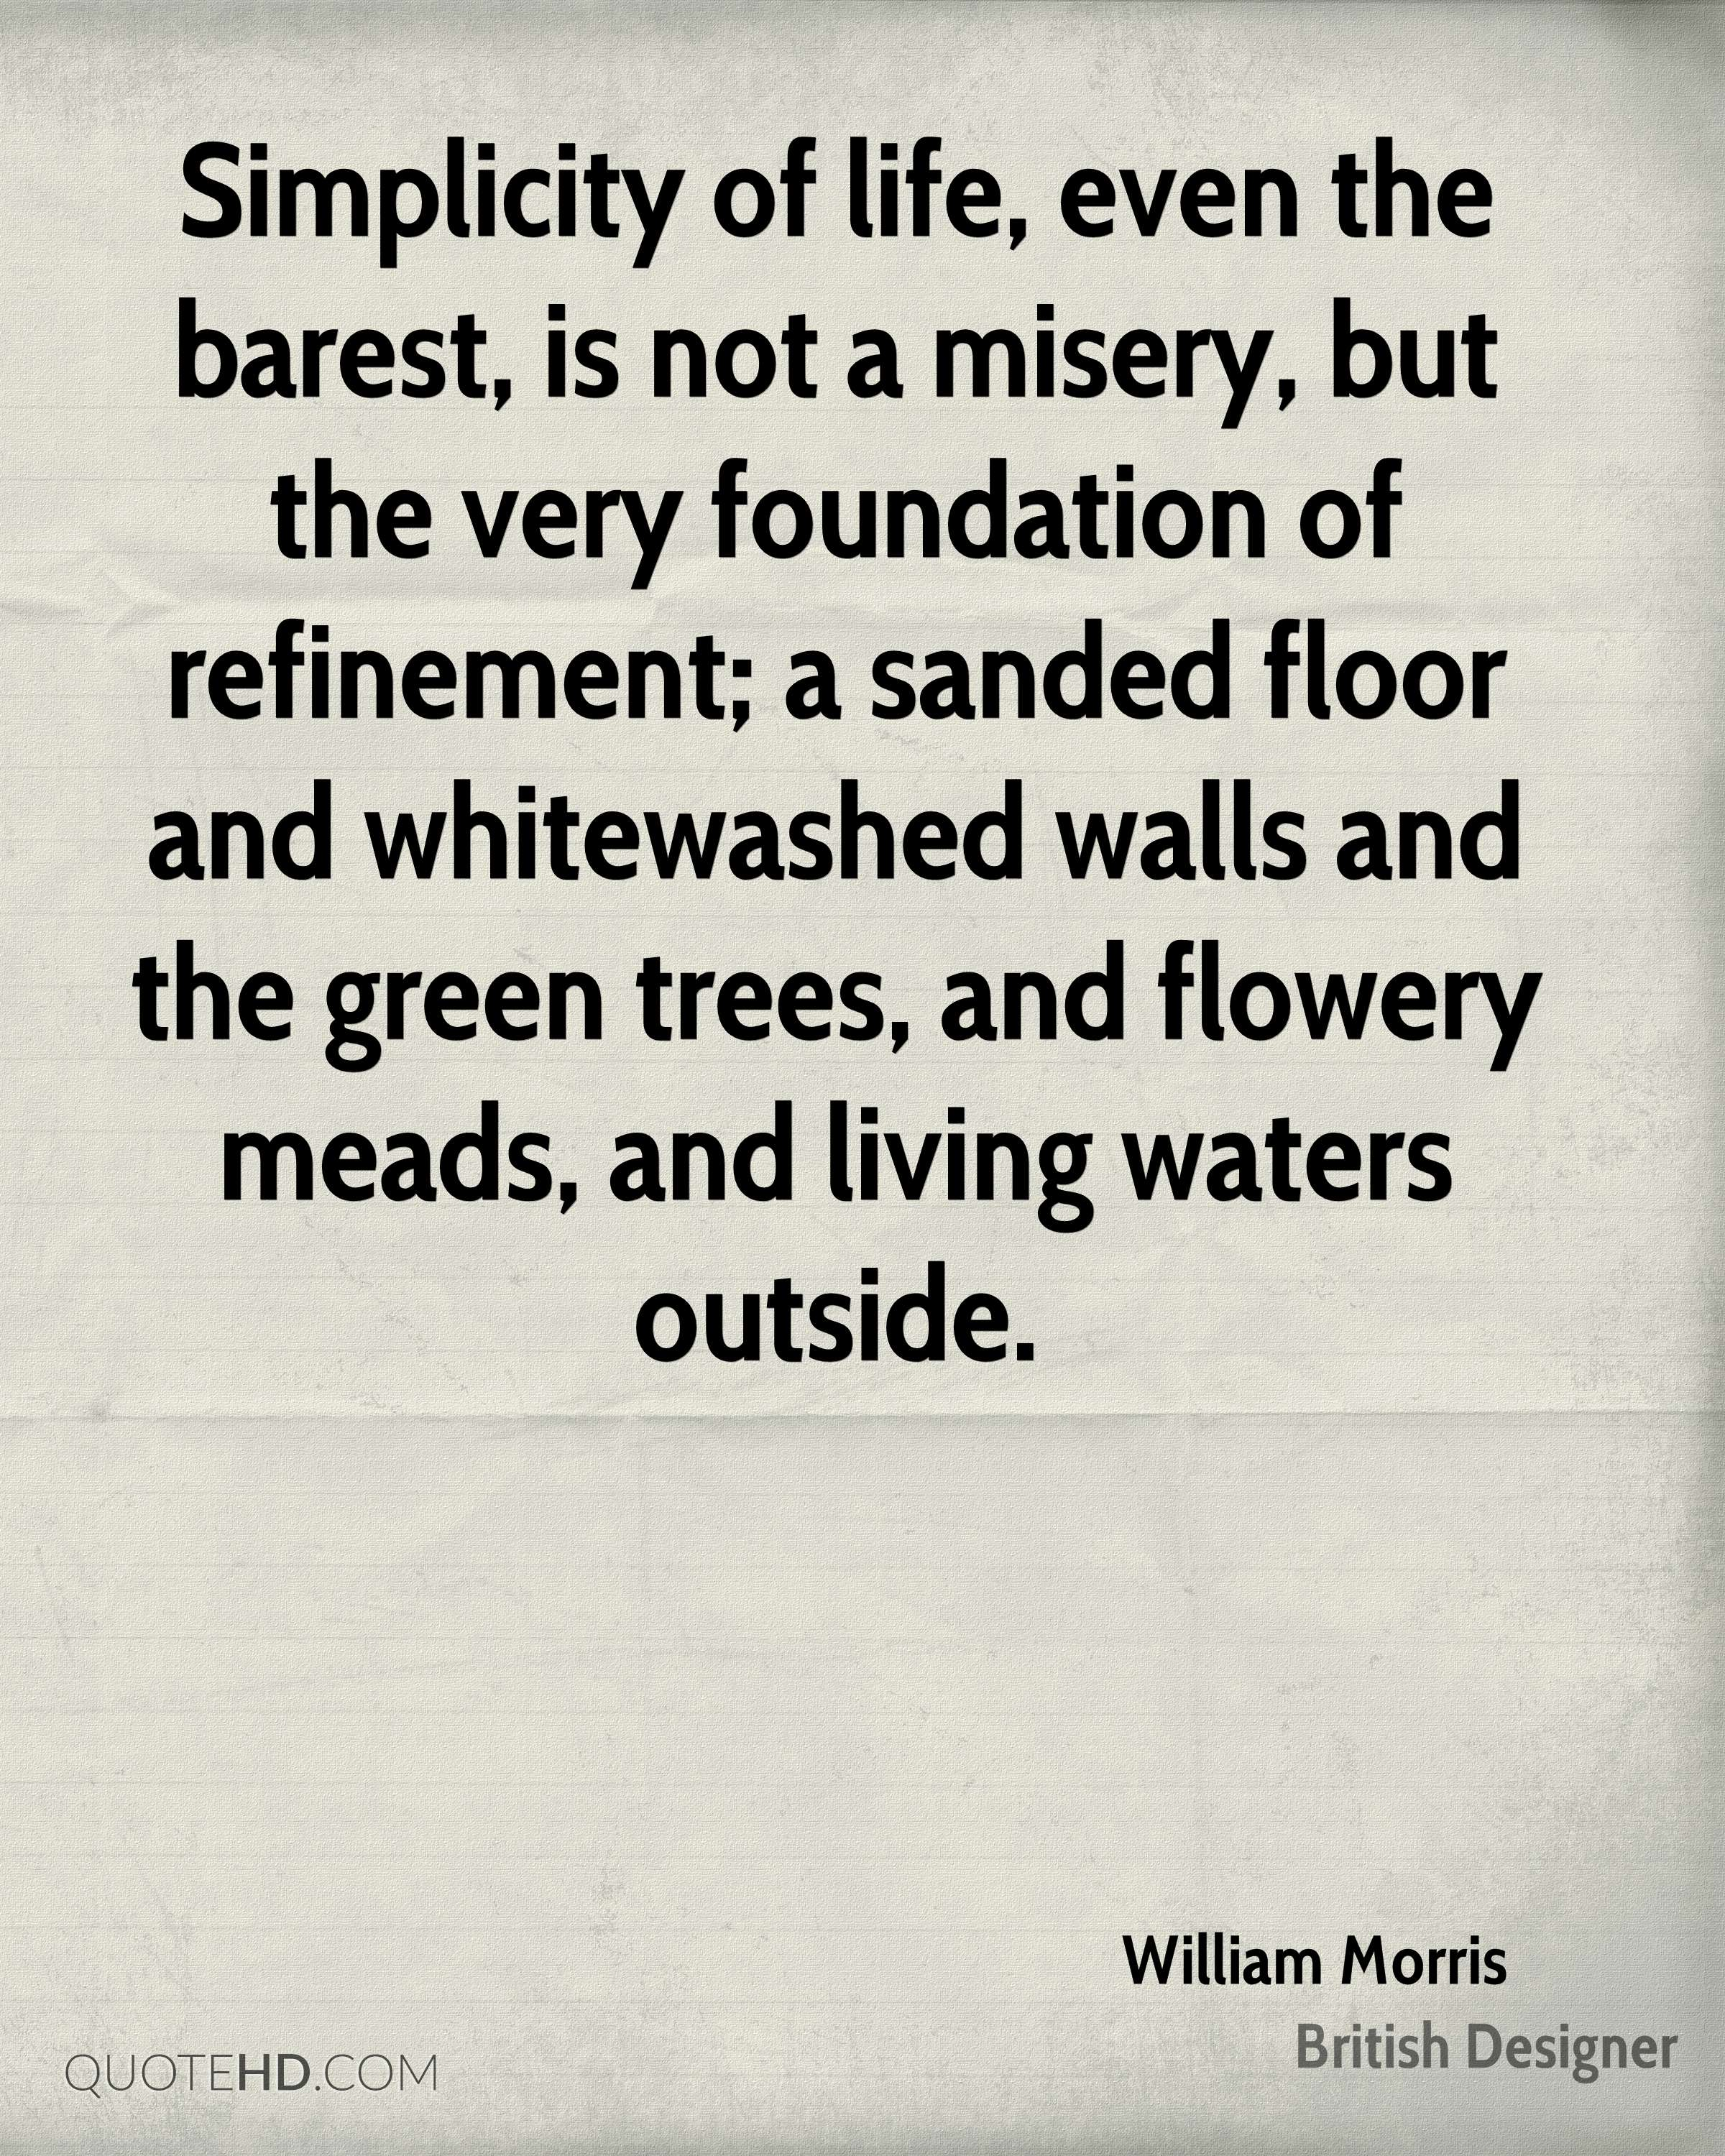 Simplicity of life, even the barest, is not a misery, but the very foundation of refinement; a sanded floor and whitewashed walls and the green trees, and flowery meads, and living waters outside.